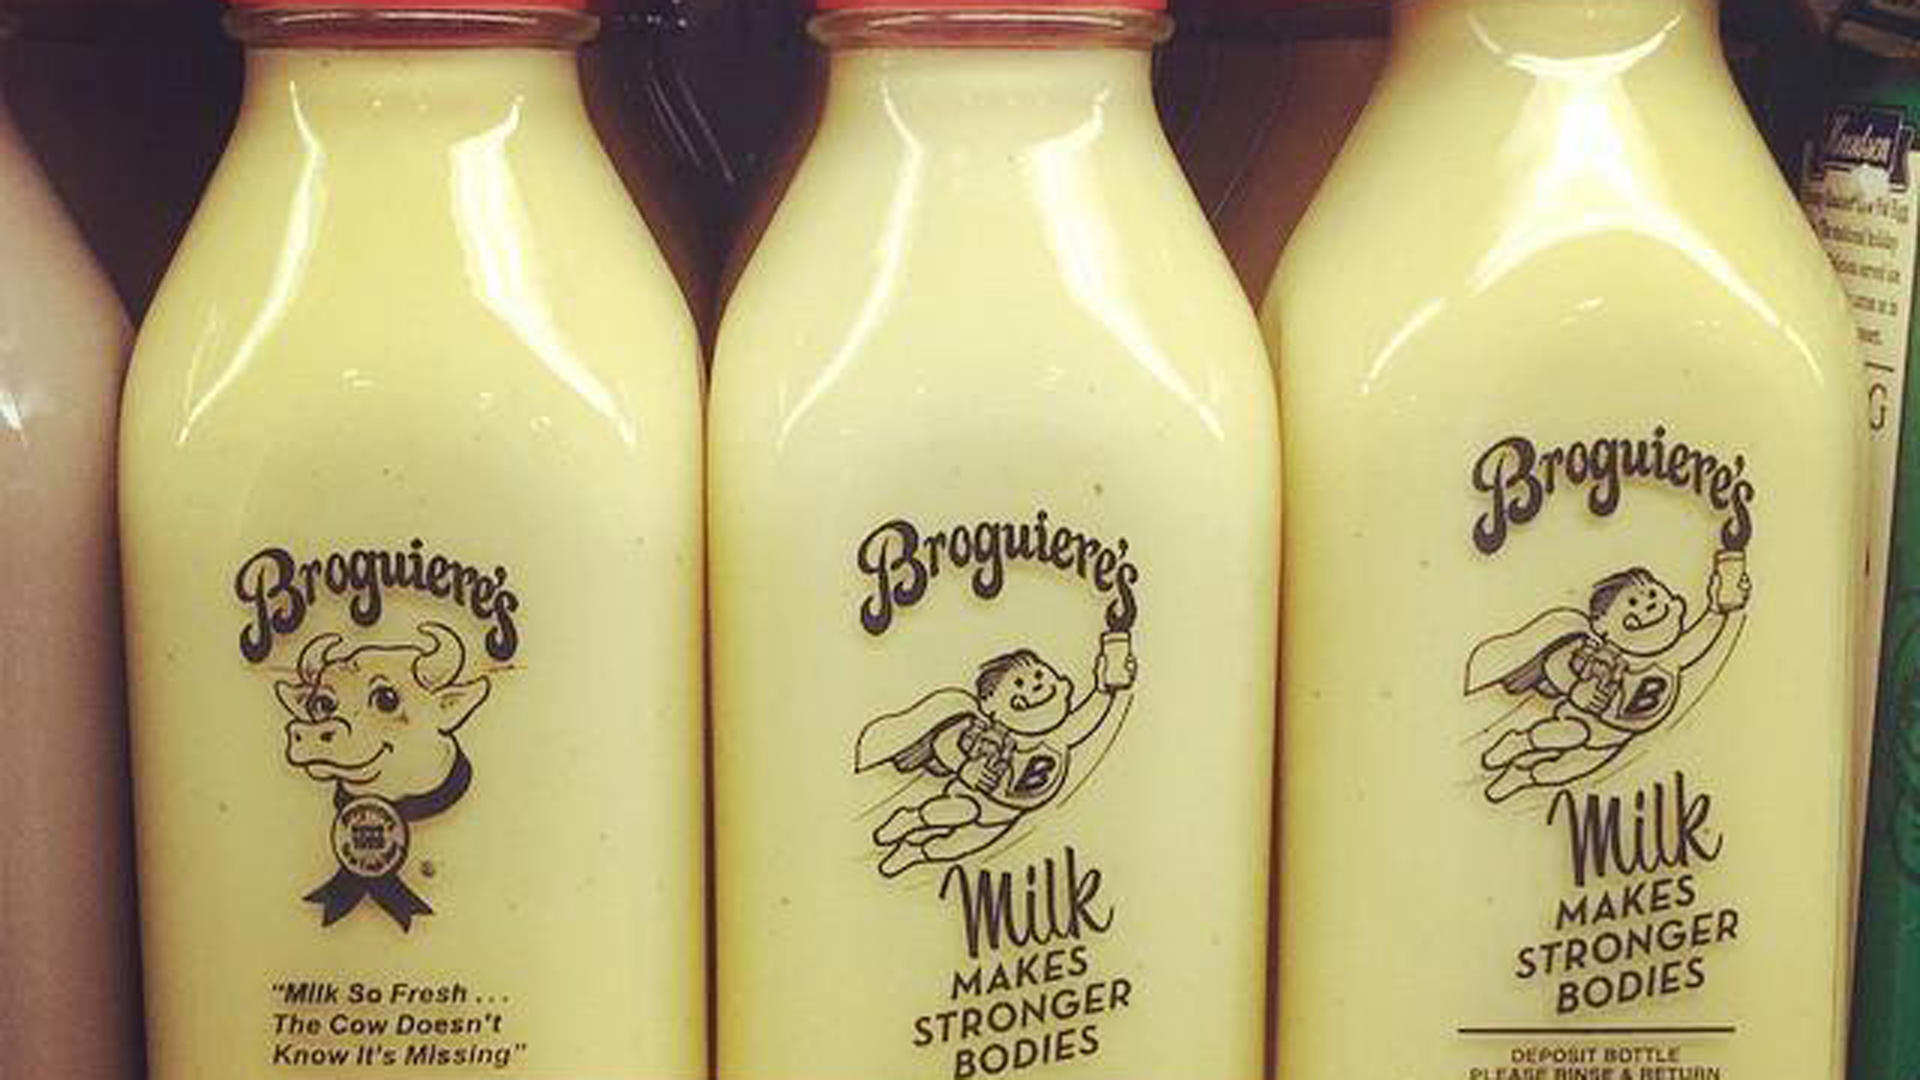 Milk from Broguiere's Dairy is seen in an image tweeted by Gelson's Markets in 2014.